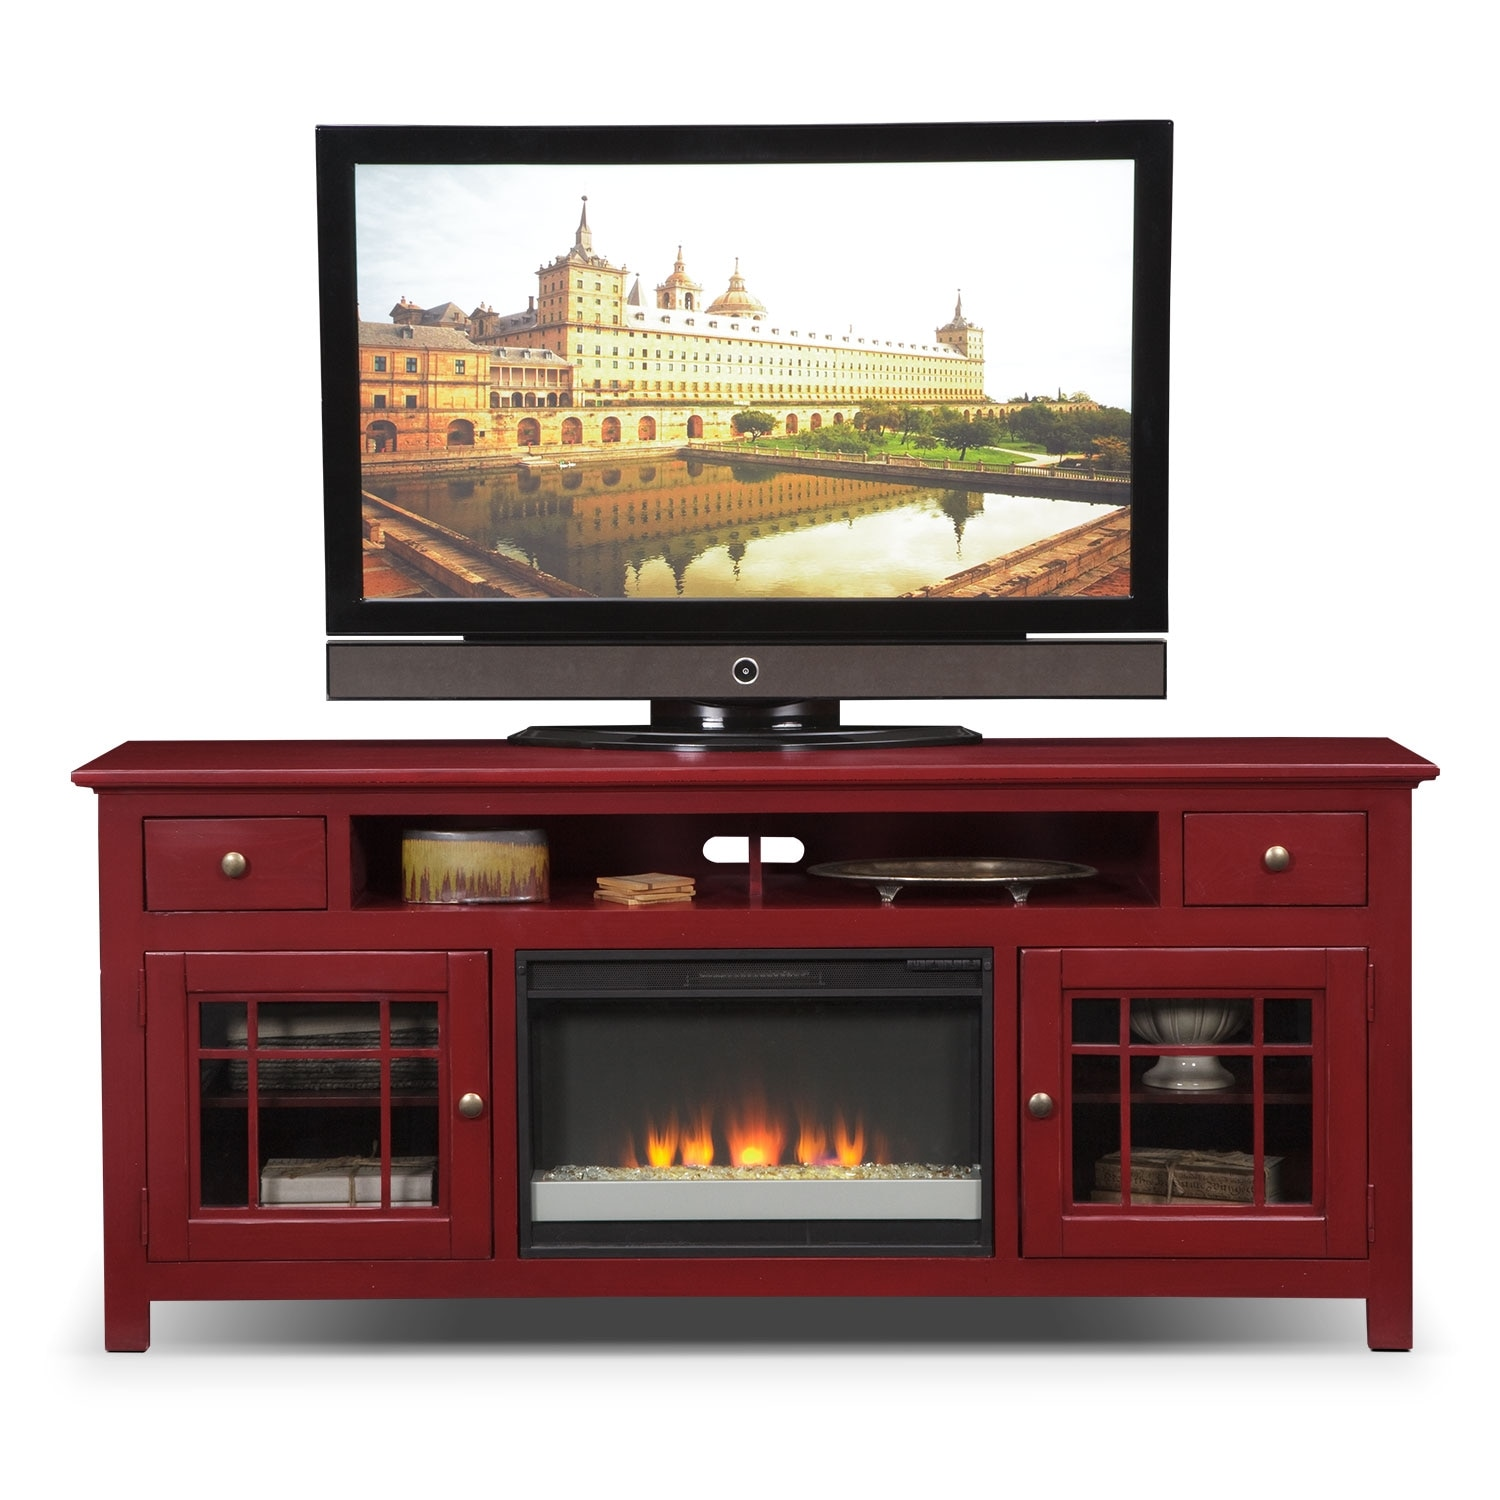 Merrick 74 fireplace tv stand with contemporary insert red american signature furniture - Contemporary fireplace insert for a warm living room ...